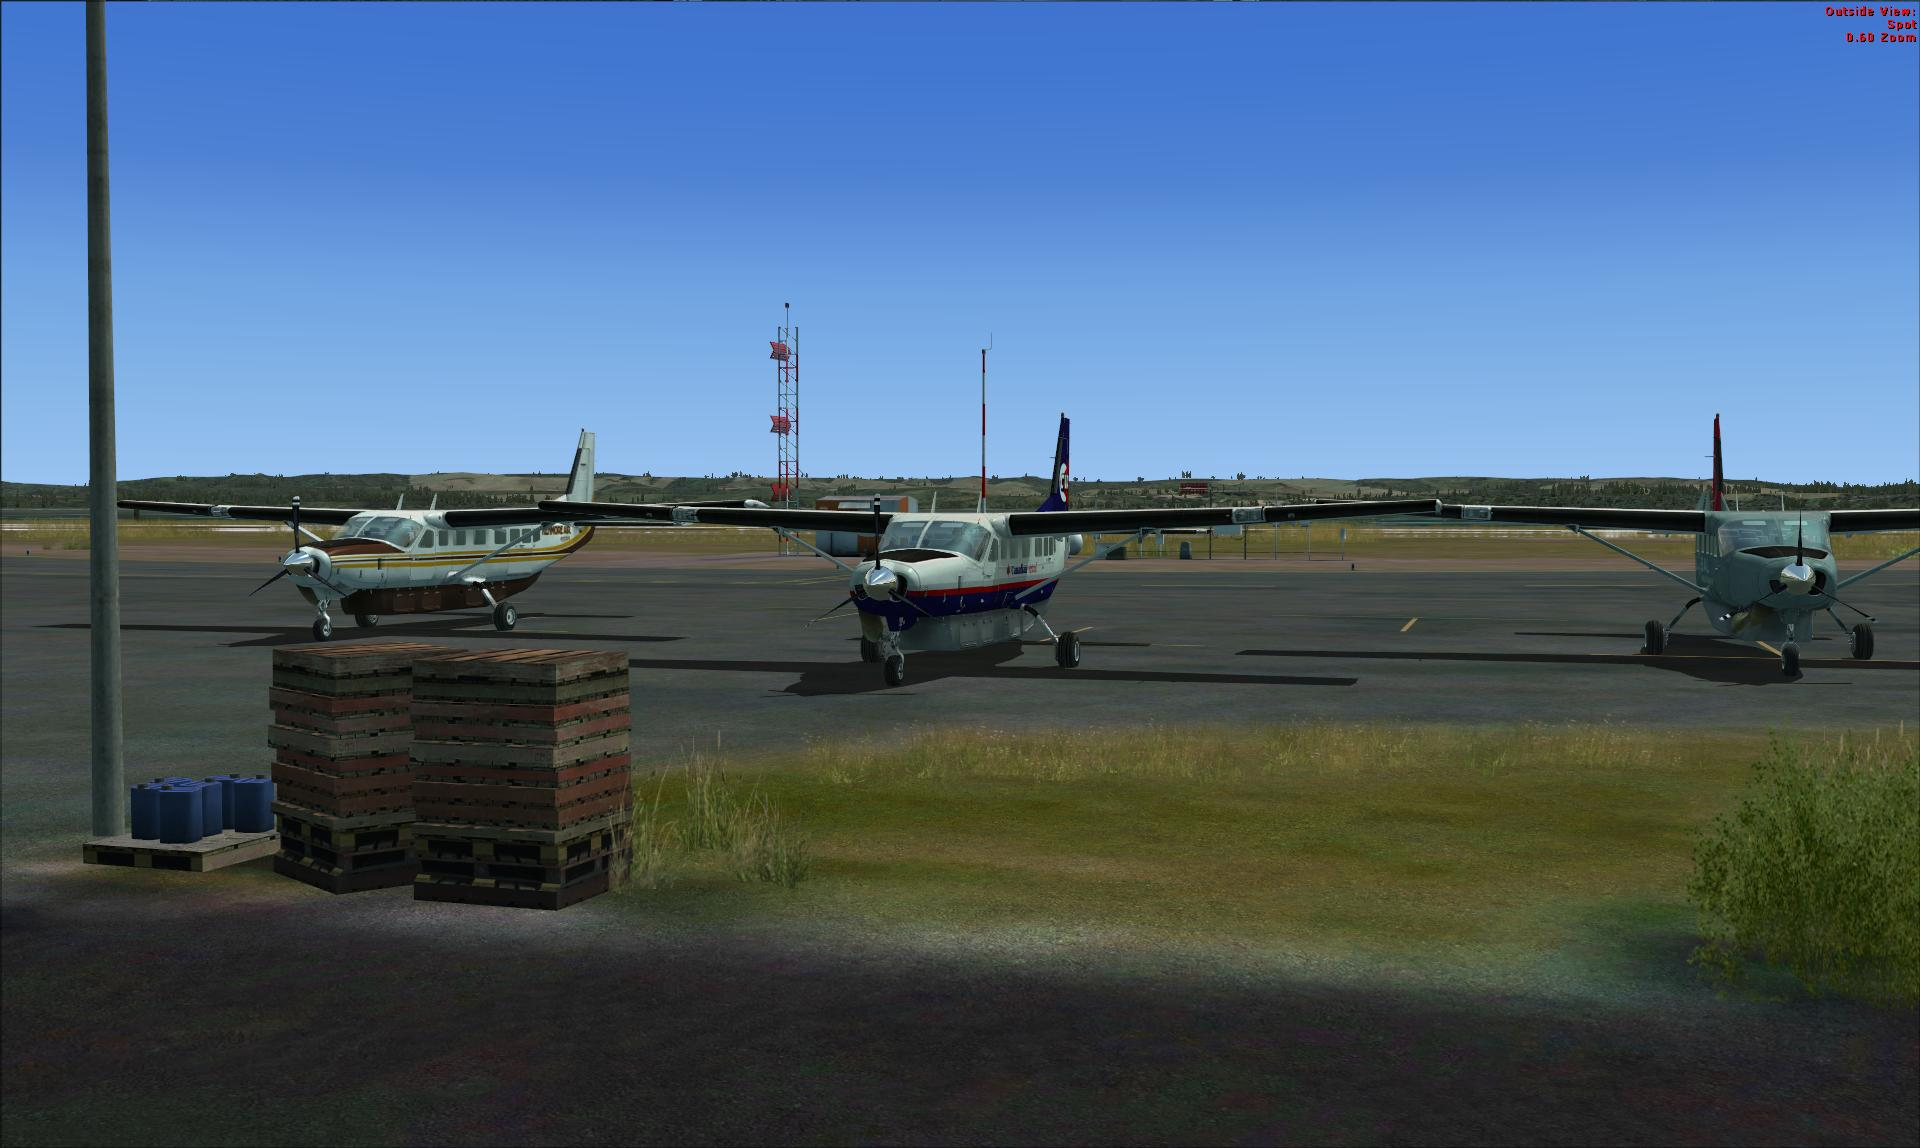 Three Cessna Grand Caravans (look to center for CVA bird) at Orbx's Bowerman Airport (KHQM) CVA flight #6119